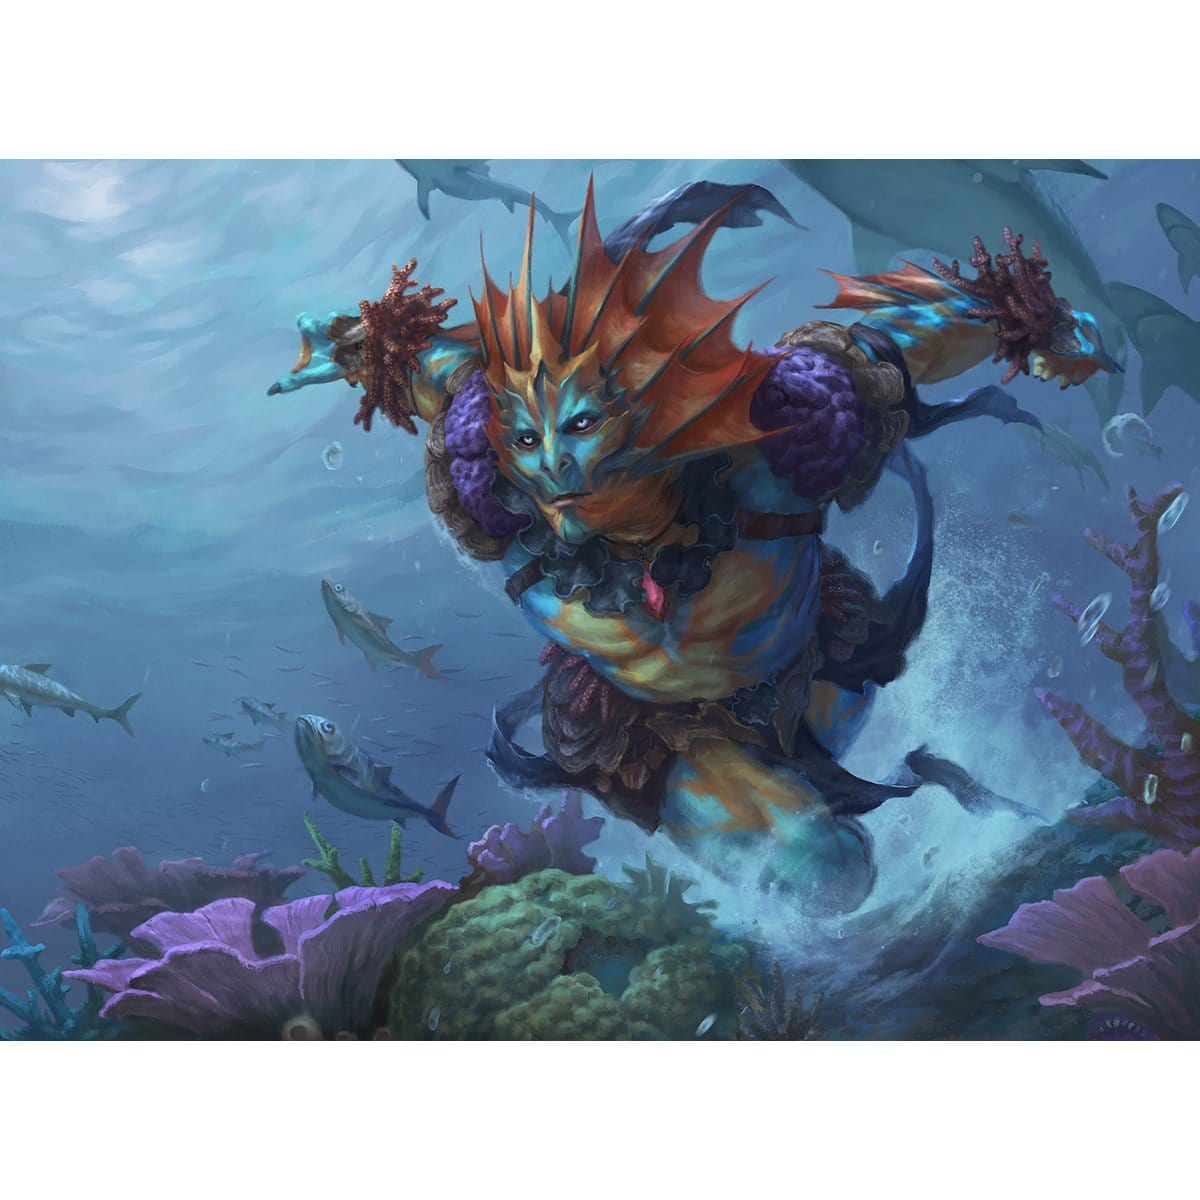 Coral Merfolk Print - Print - Original Magic Art - Accessories for Magic the Gathering and other card games